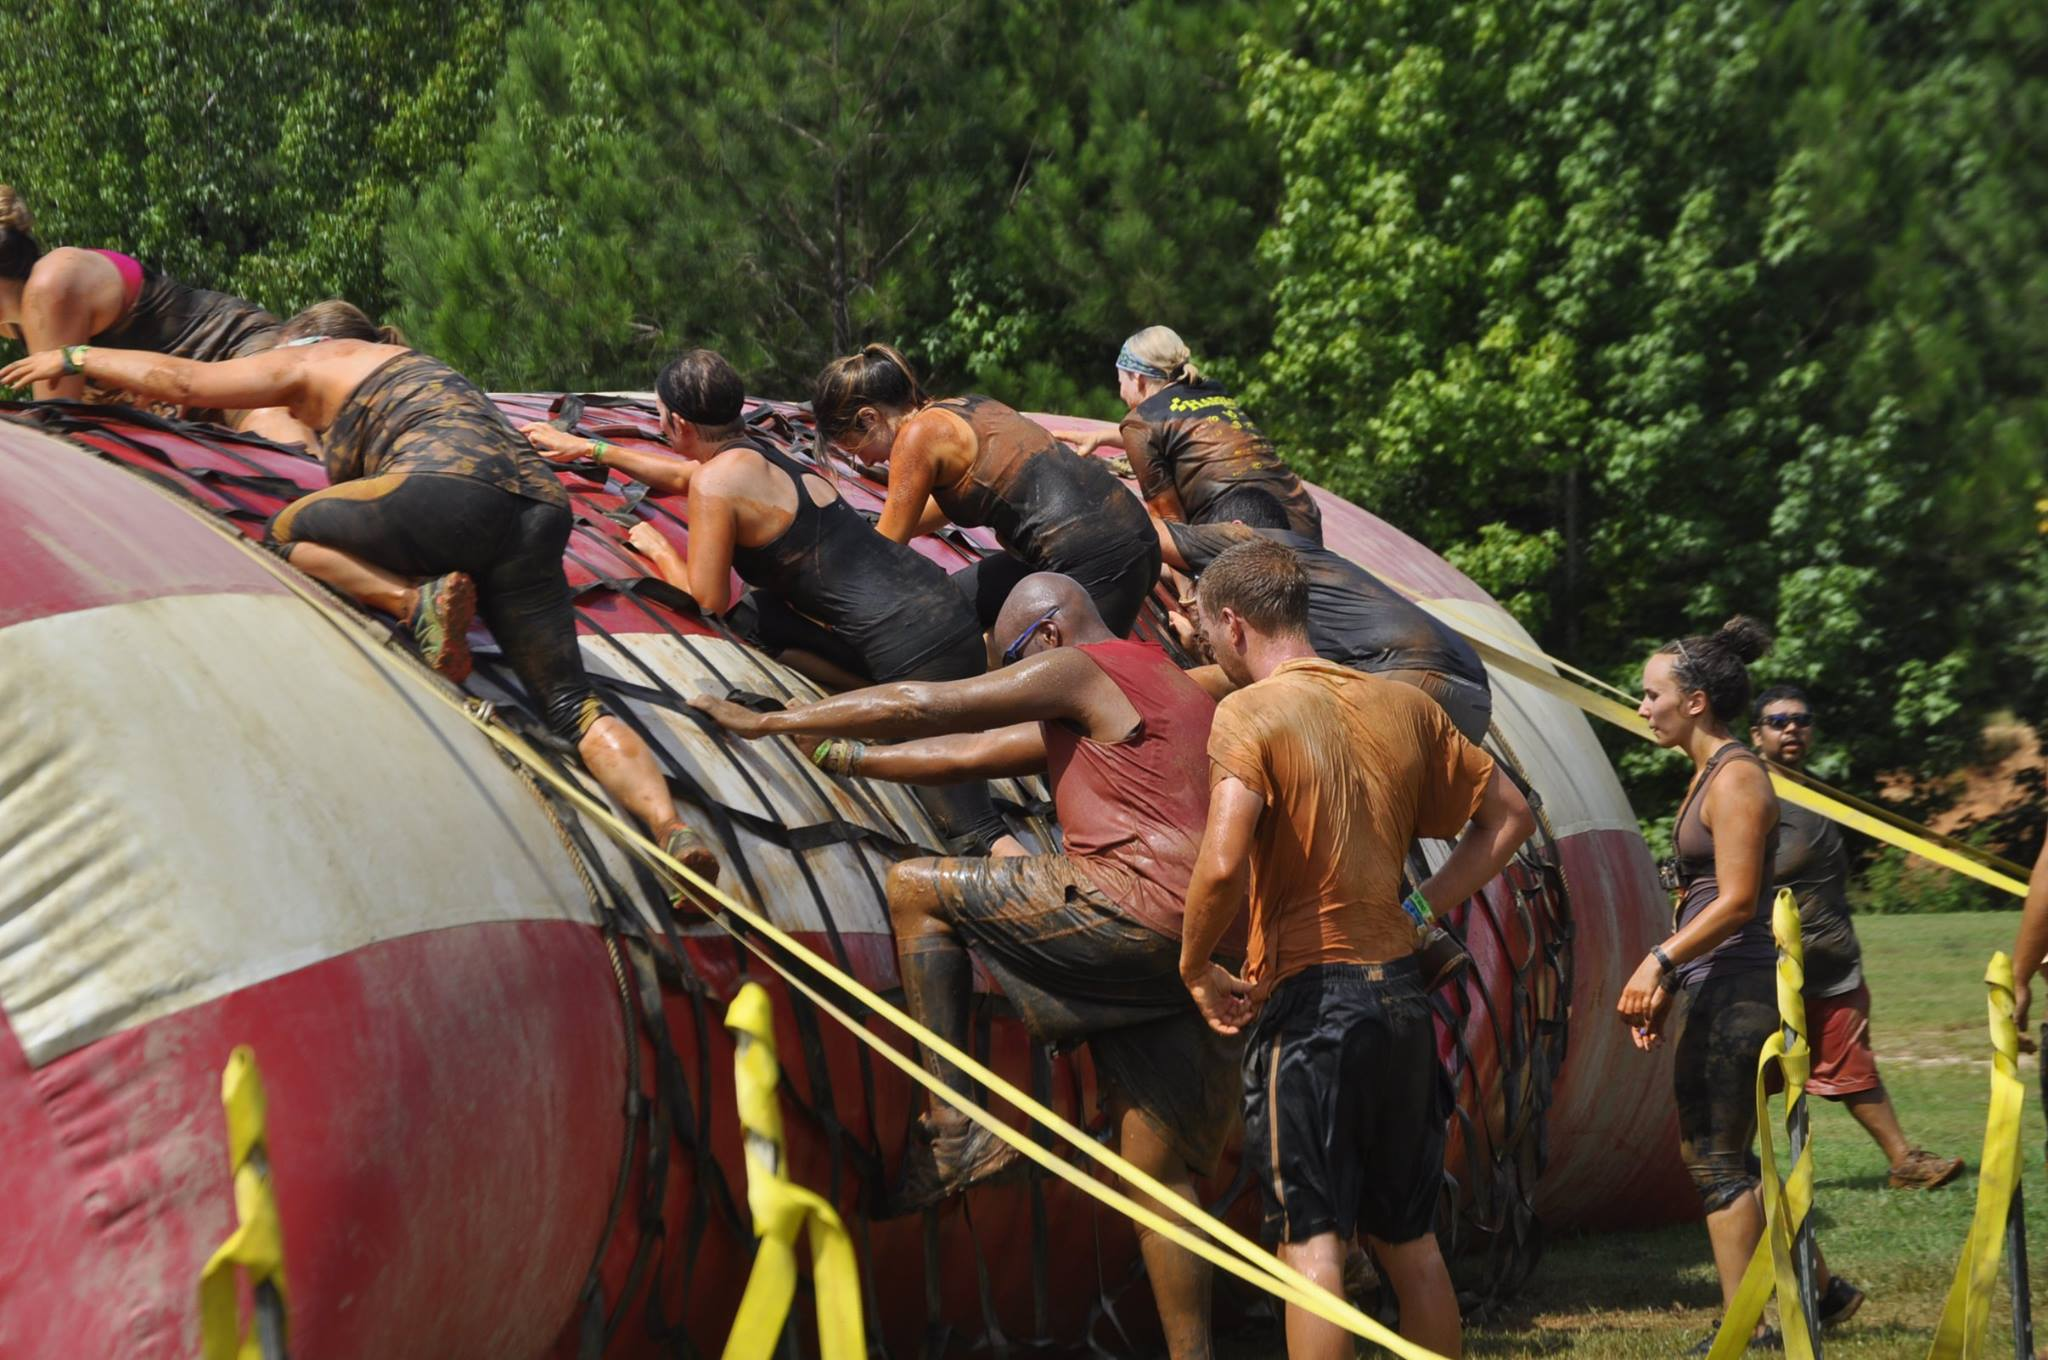 Rugged Maniac - The Blobstacle